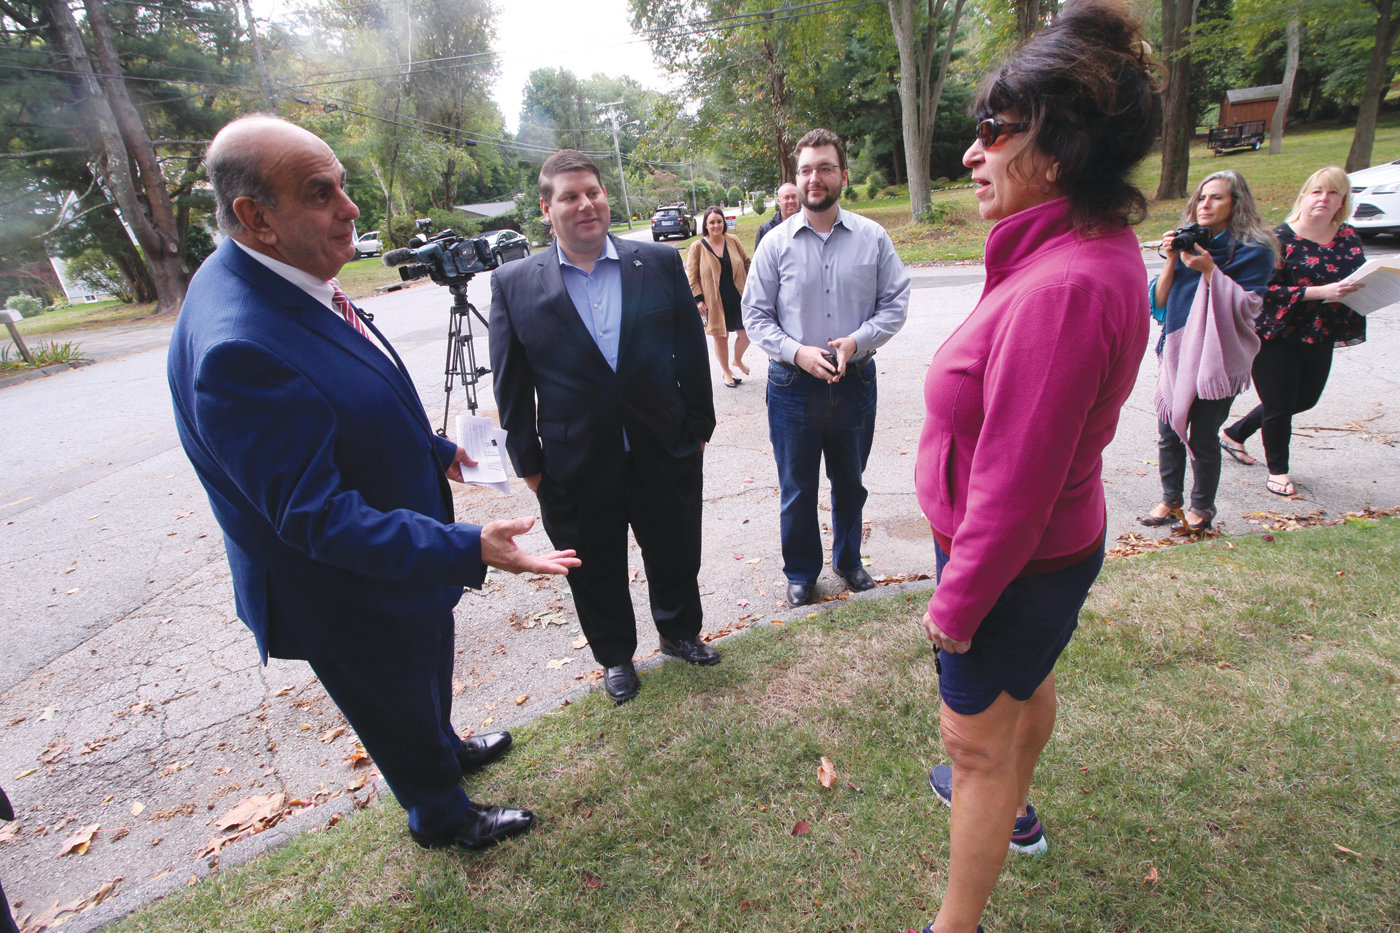 FIRST TO GET THE NEWS: Even before Mayor Joseph Solomon officially announced the program, Virginia Sardelli, who happened to come along the gathering on Gauvin Drive Thursday morning, learned of the mayor's plan to borrow more than $13 million to repave city streets.